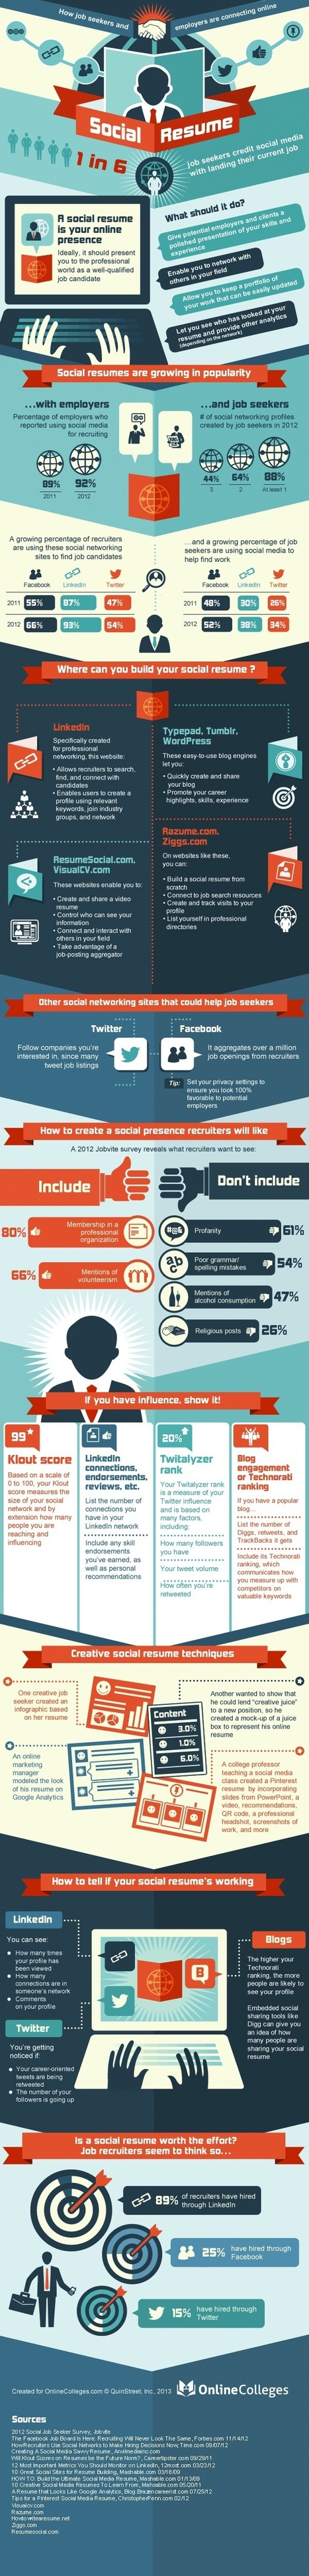 How Social Media Could Land You Your Next Job [INFOGRAPHIC]   Talent Communities   Scoop.it